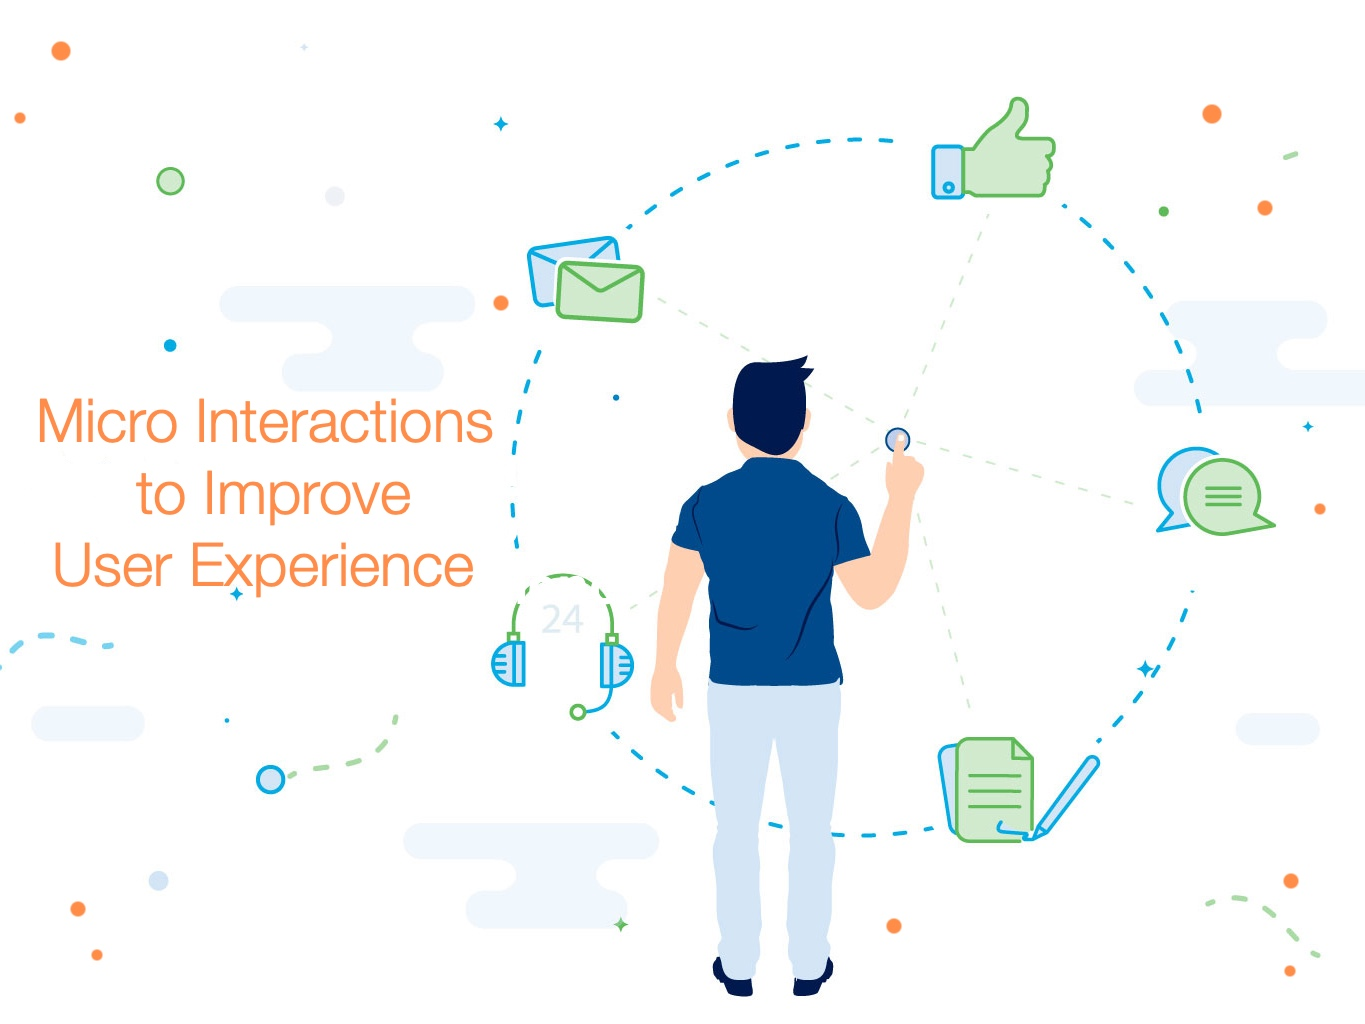 micro interactions to improve user experience